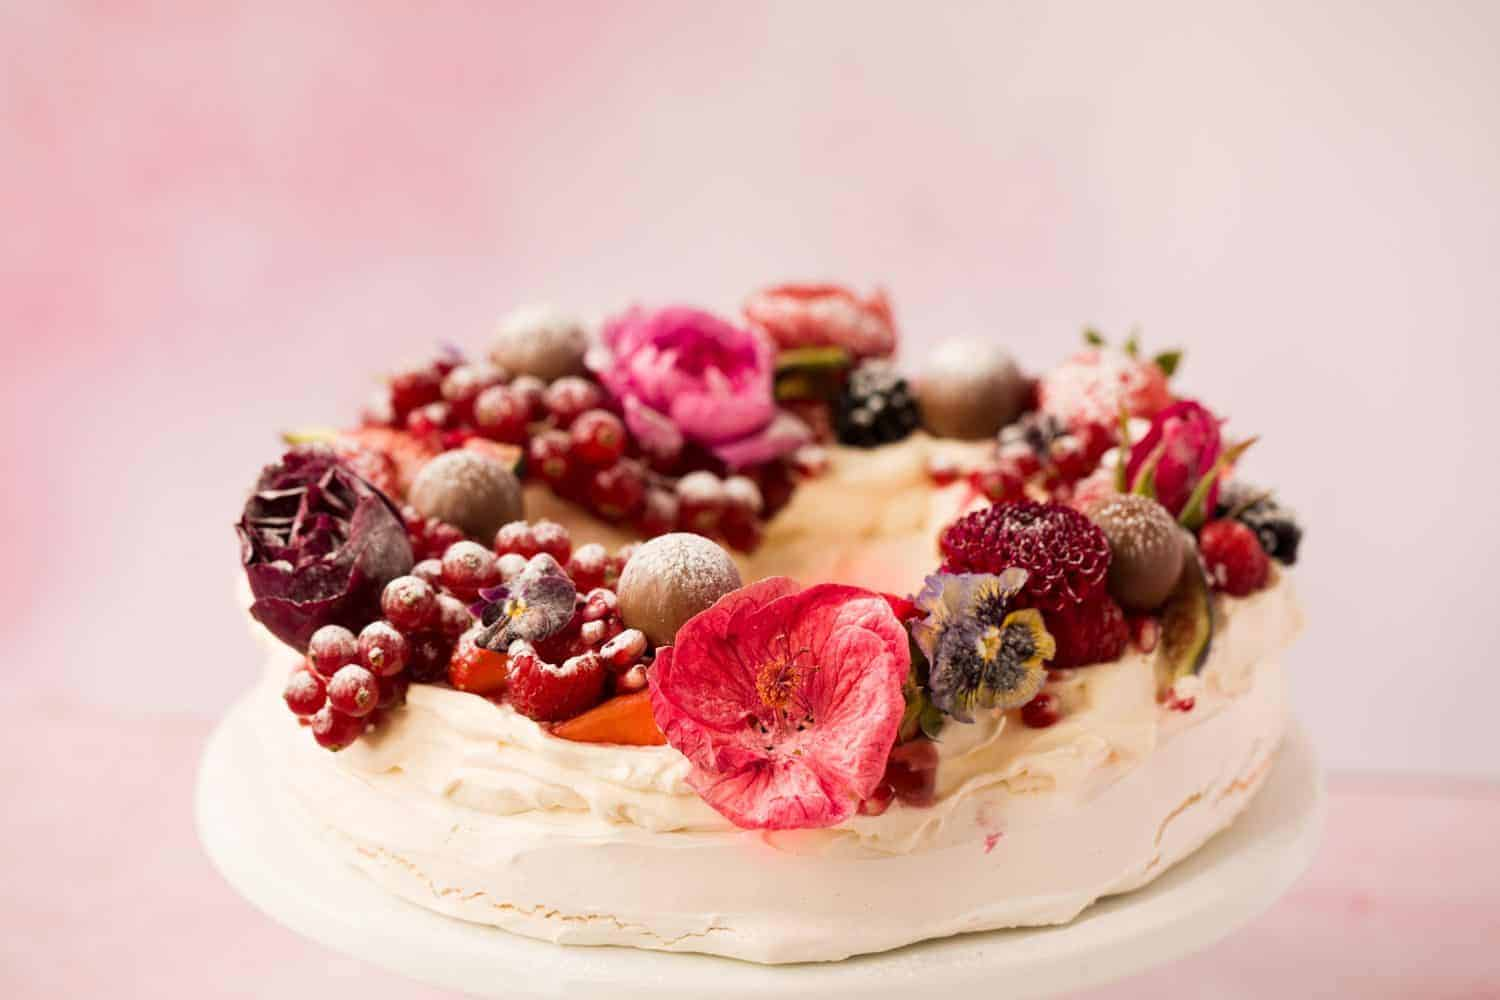 ¾ angle of a circular pavlova that has been decorated with fruit and edible flowers.